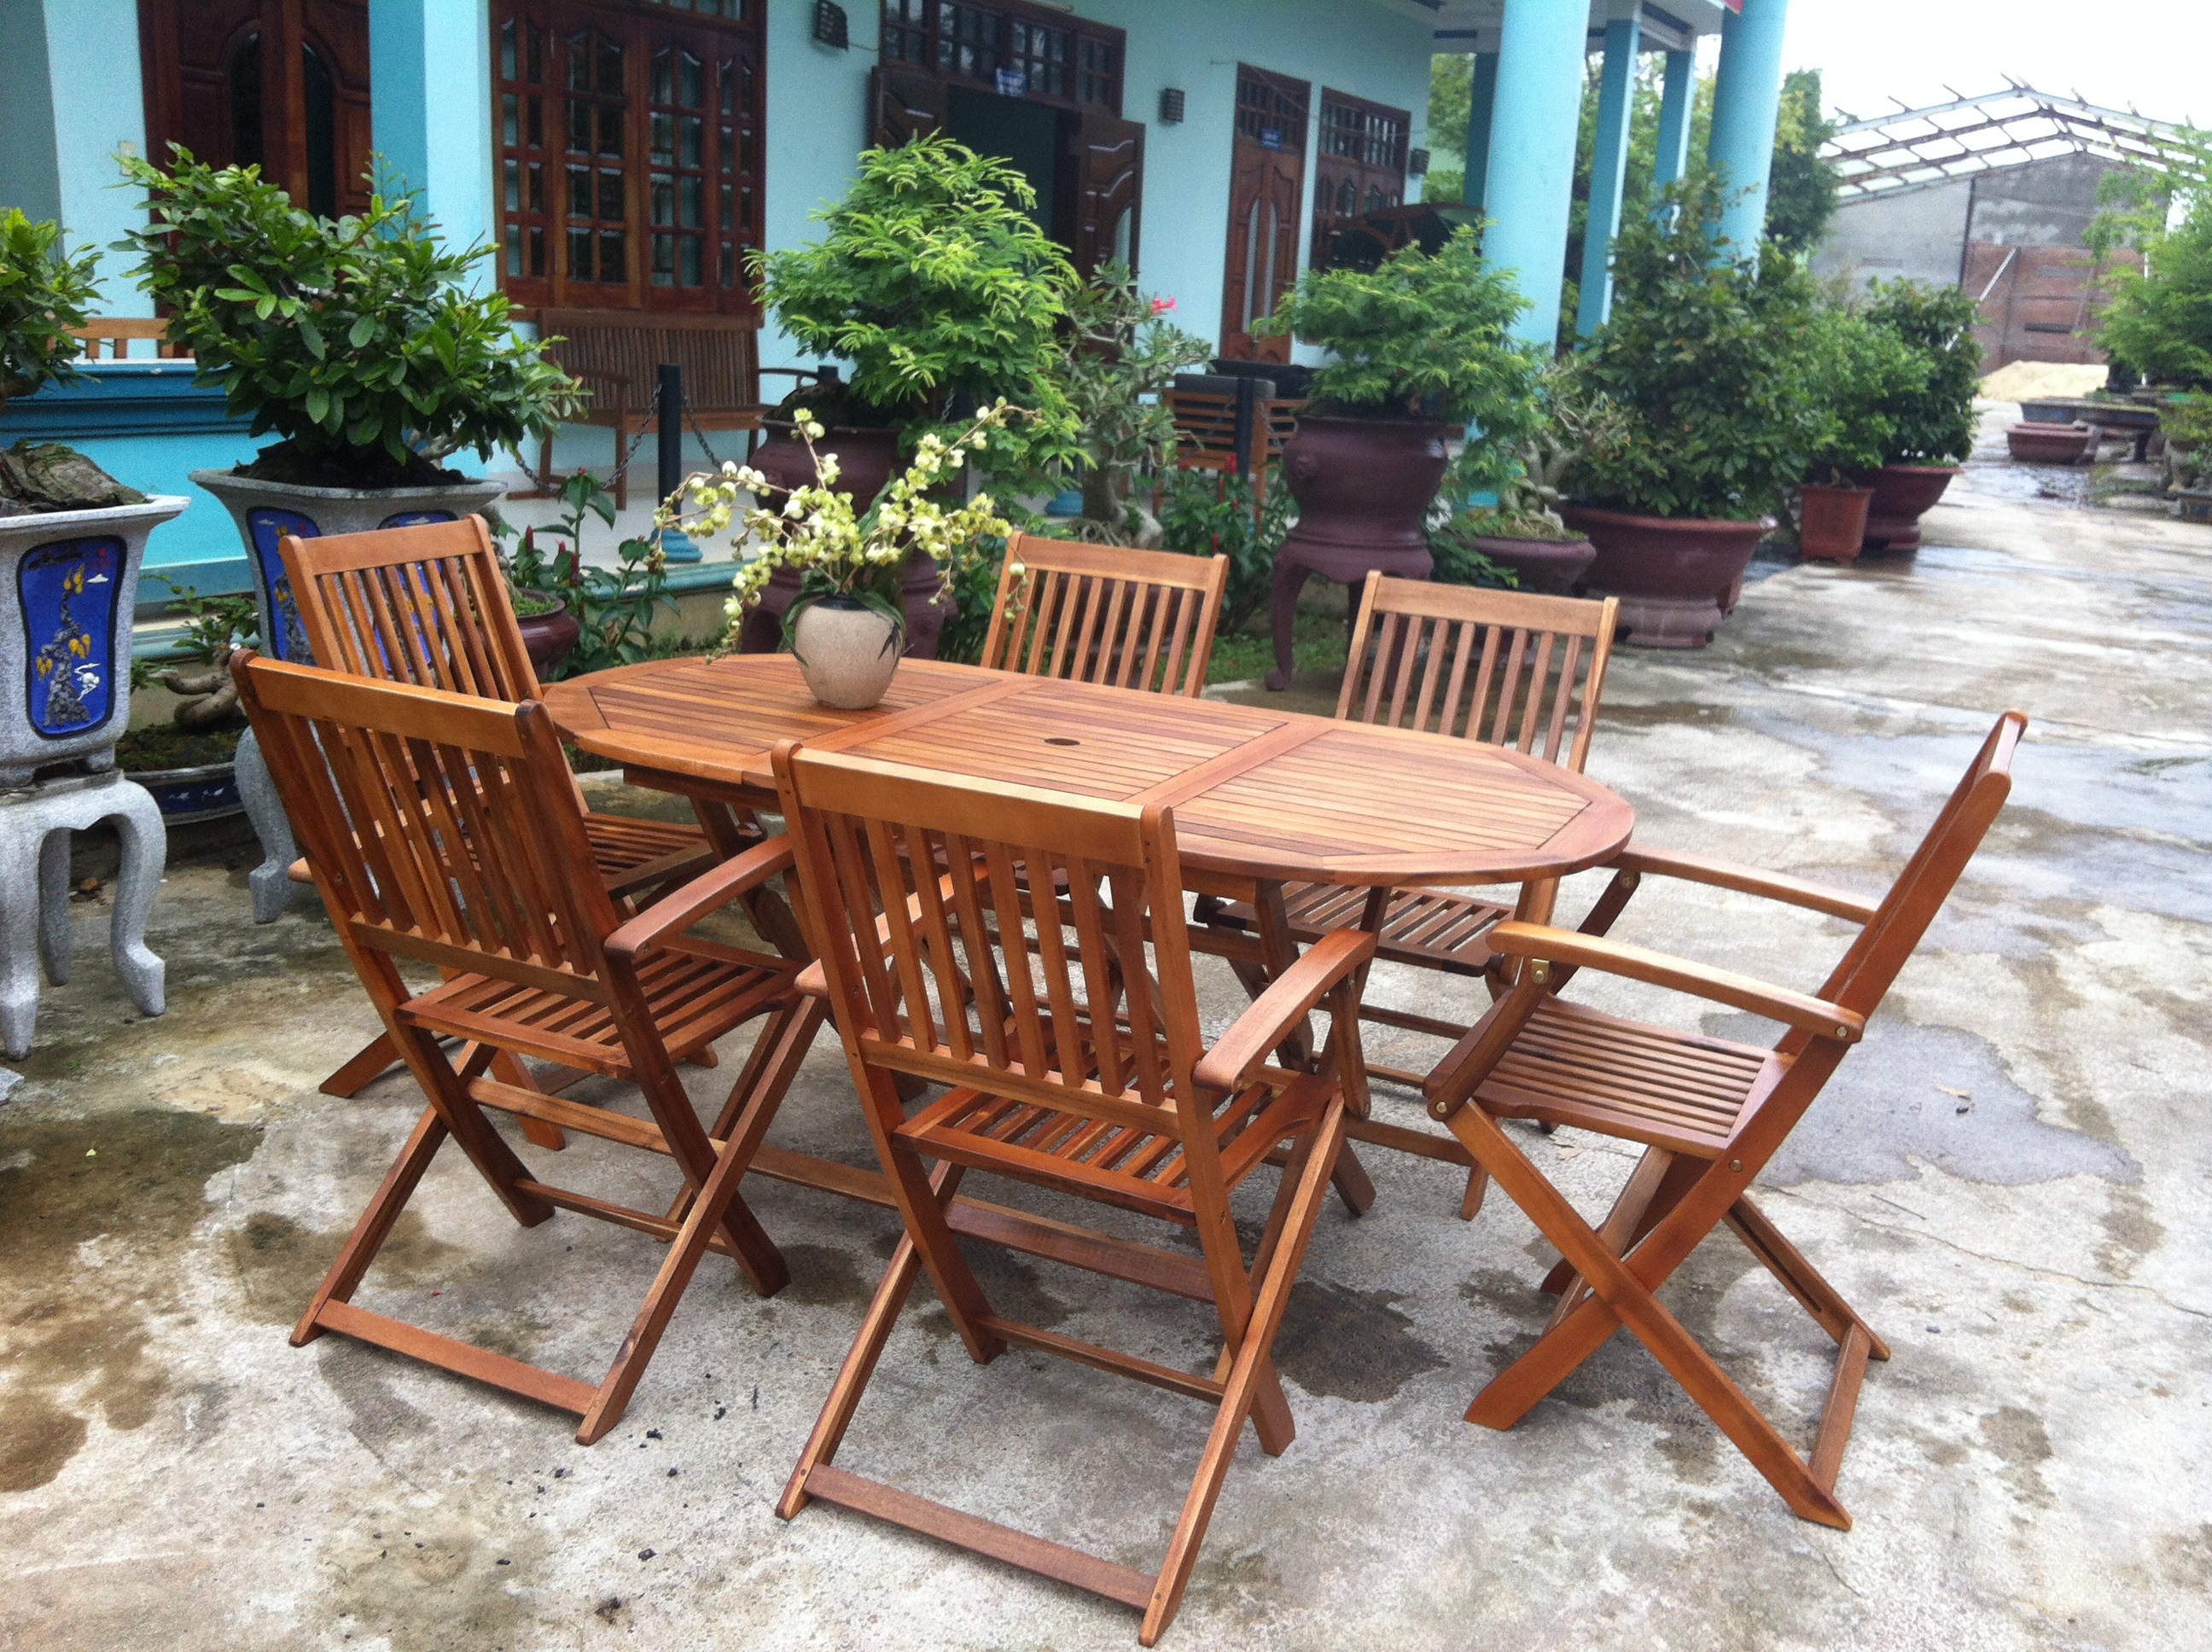 Garden Oval Table 6 Chairs Wooden Patio Outdoor Dining Furniture Foldin